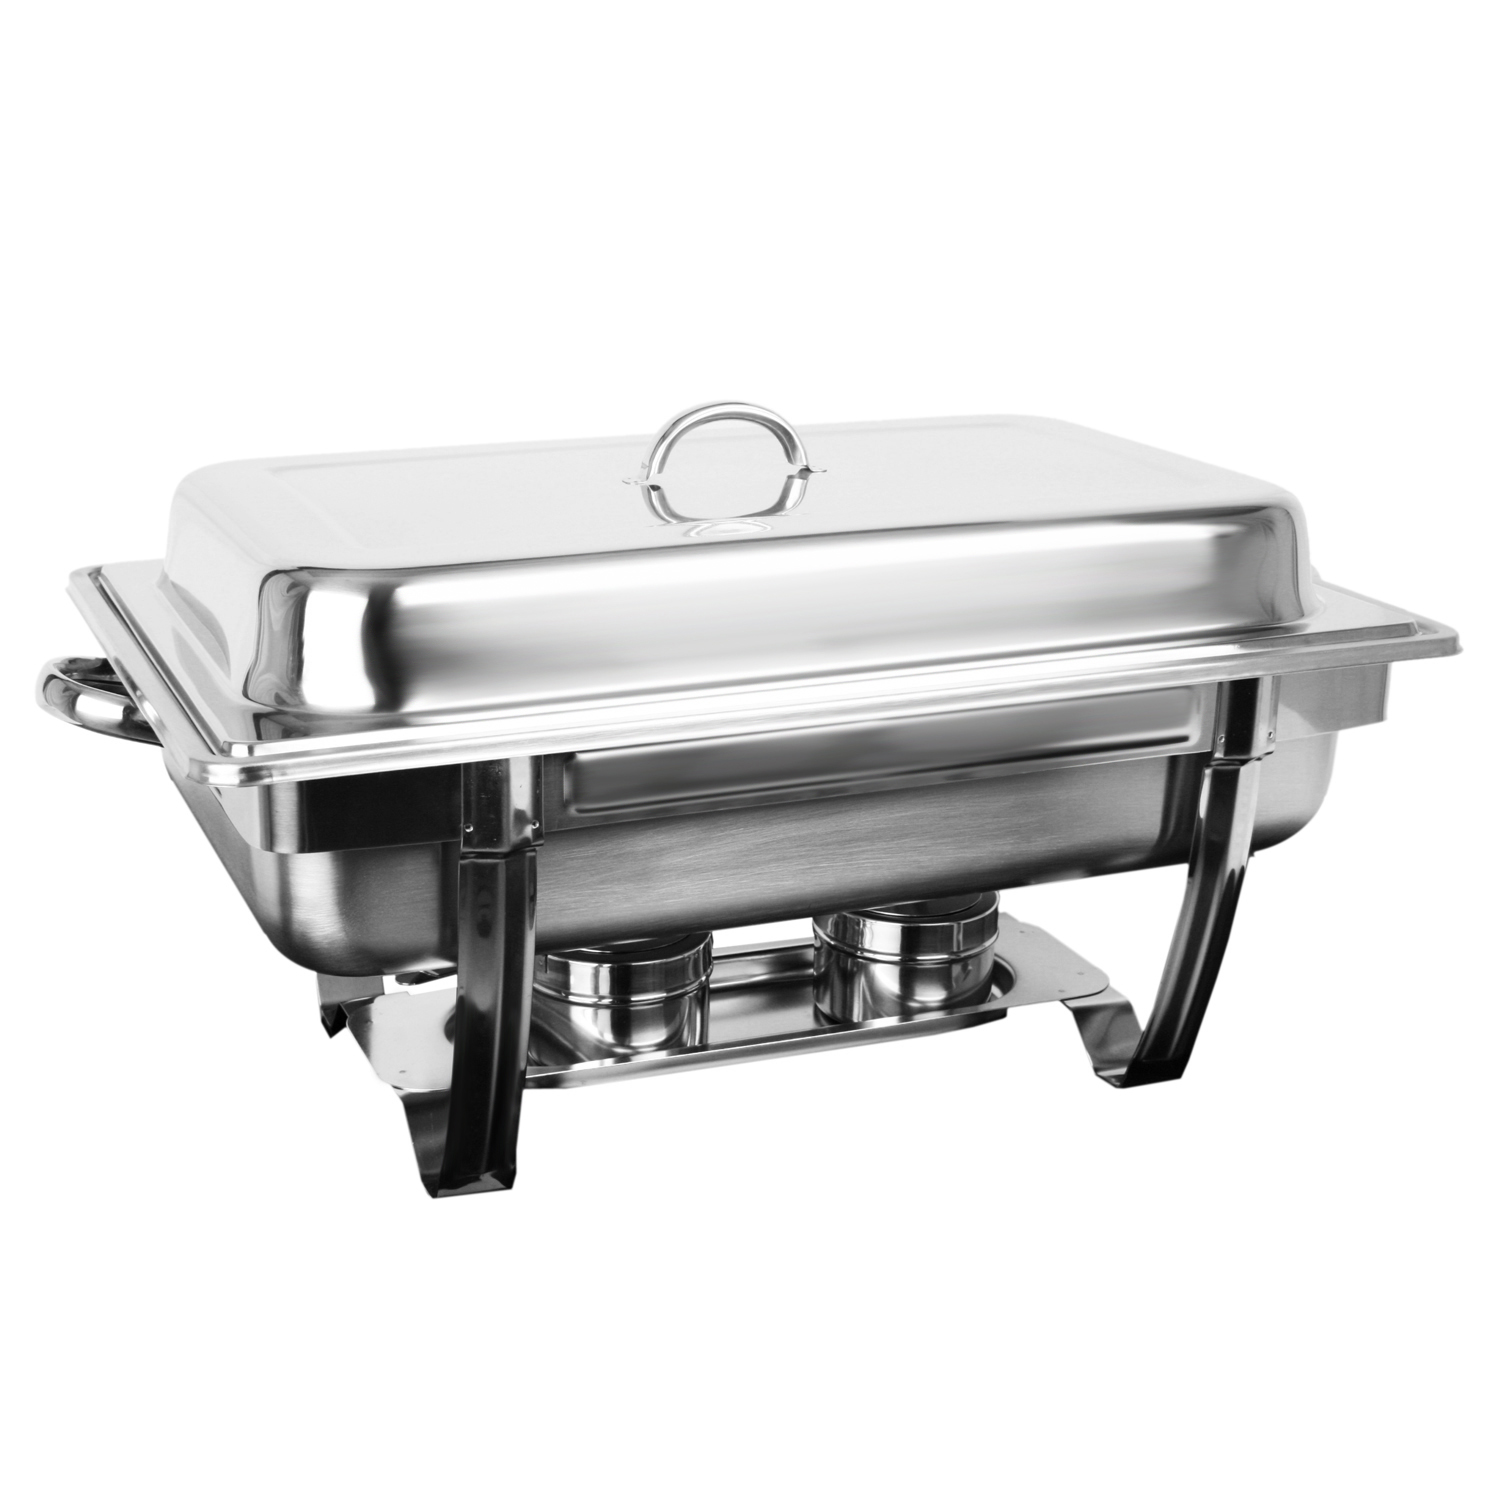 Excellante 8 Quart Stainless Steel Chafer, Stackable